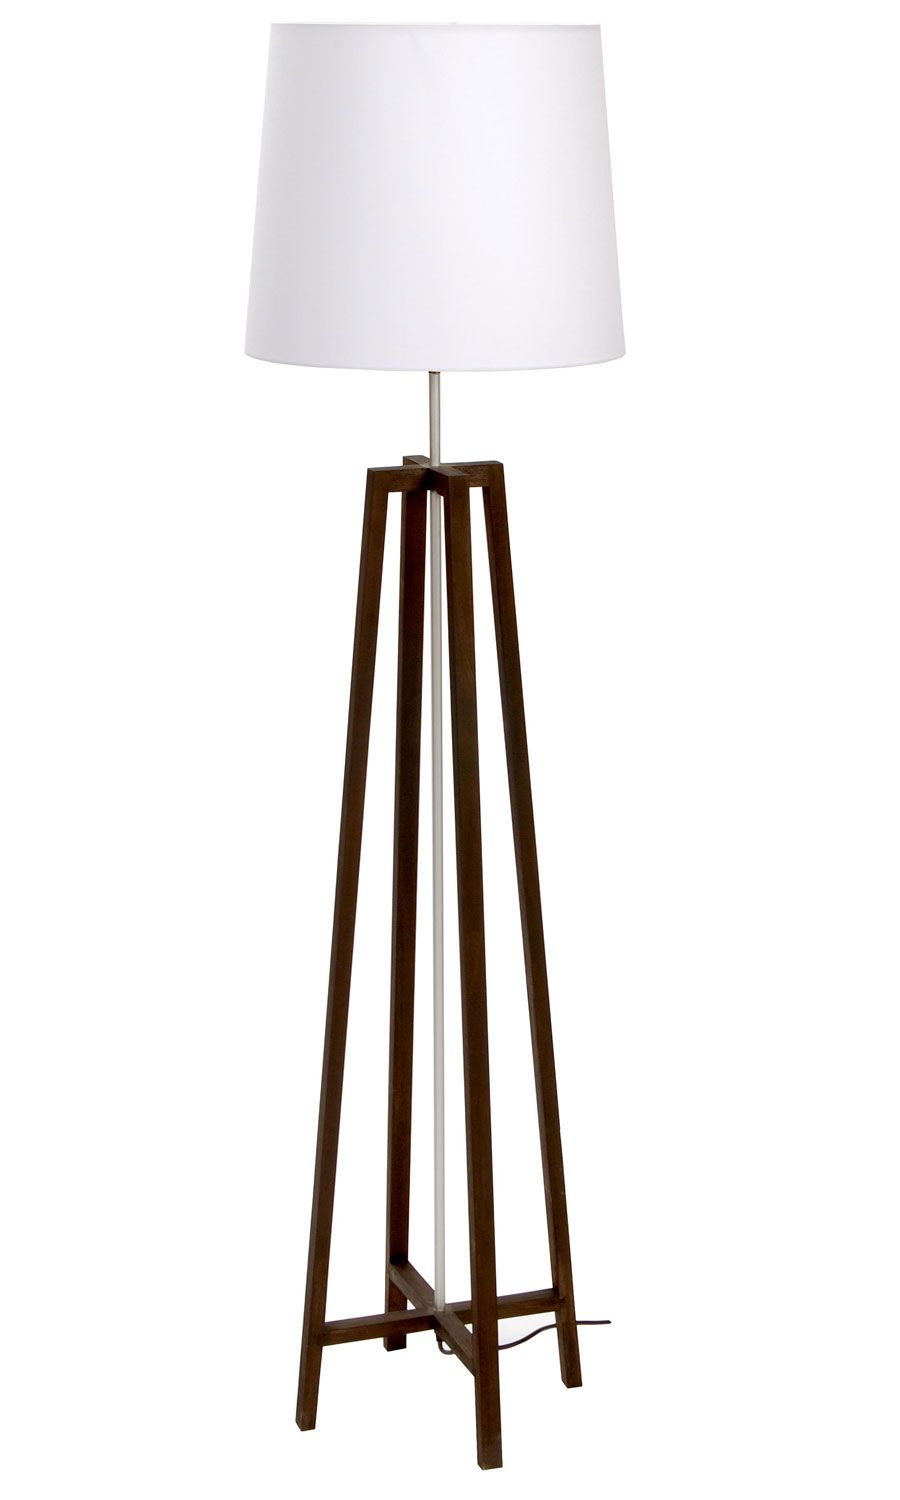 modern lighting concepts. Create A Stylish Lighting Concept For Your Space With Our Contemporary Collection Of Modern Lamps, From Practical Desk Illumination To Bedside Relaxation. Concepts